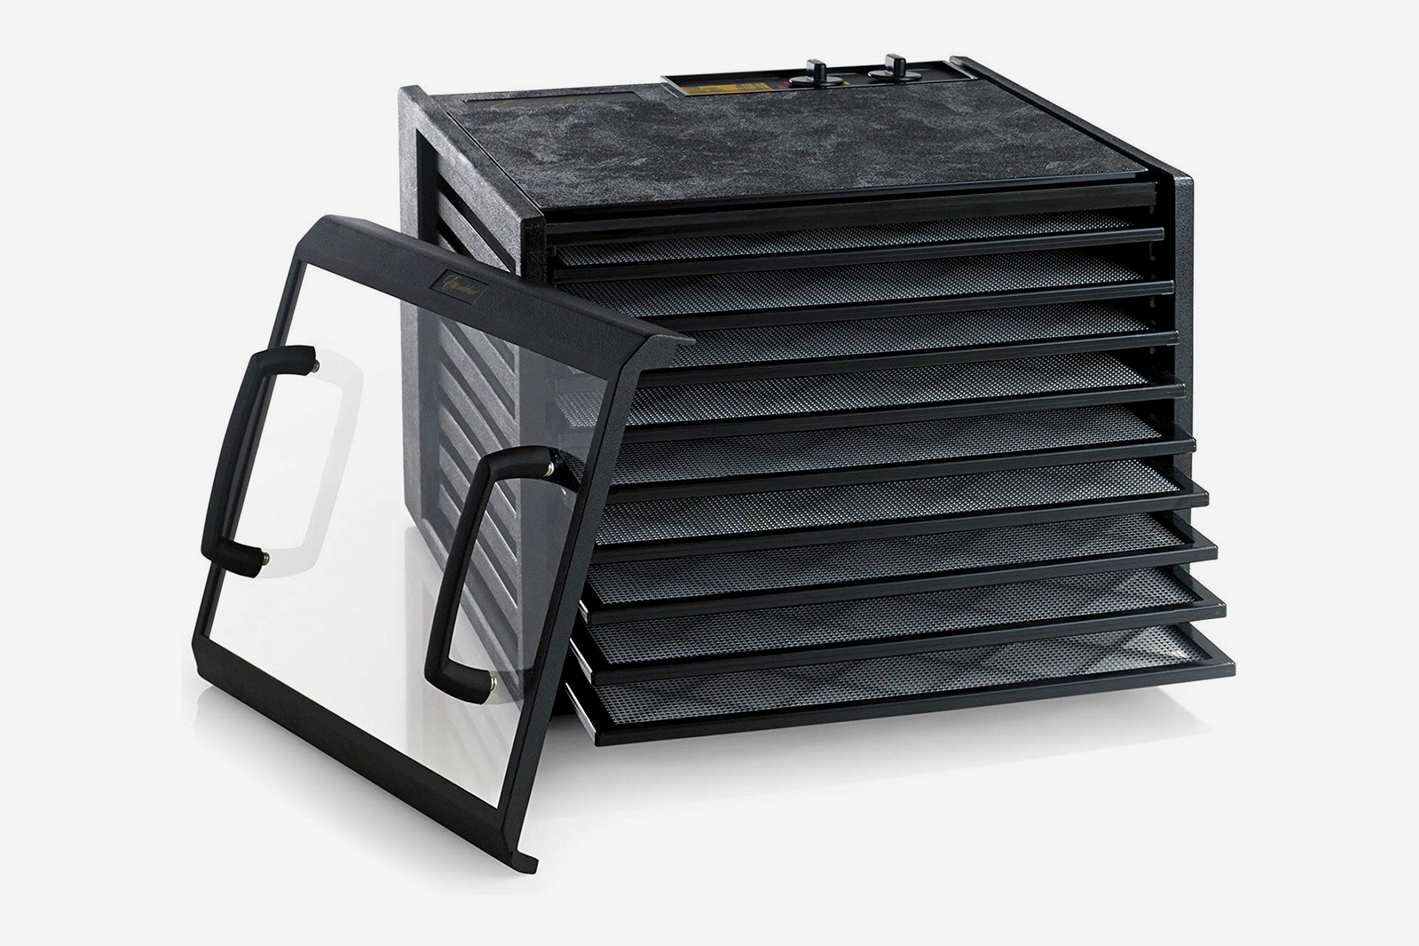 Excalibur 3926TCDB 9-Tray Electric Food Dehydrator with Clear Door